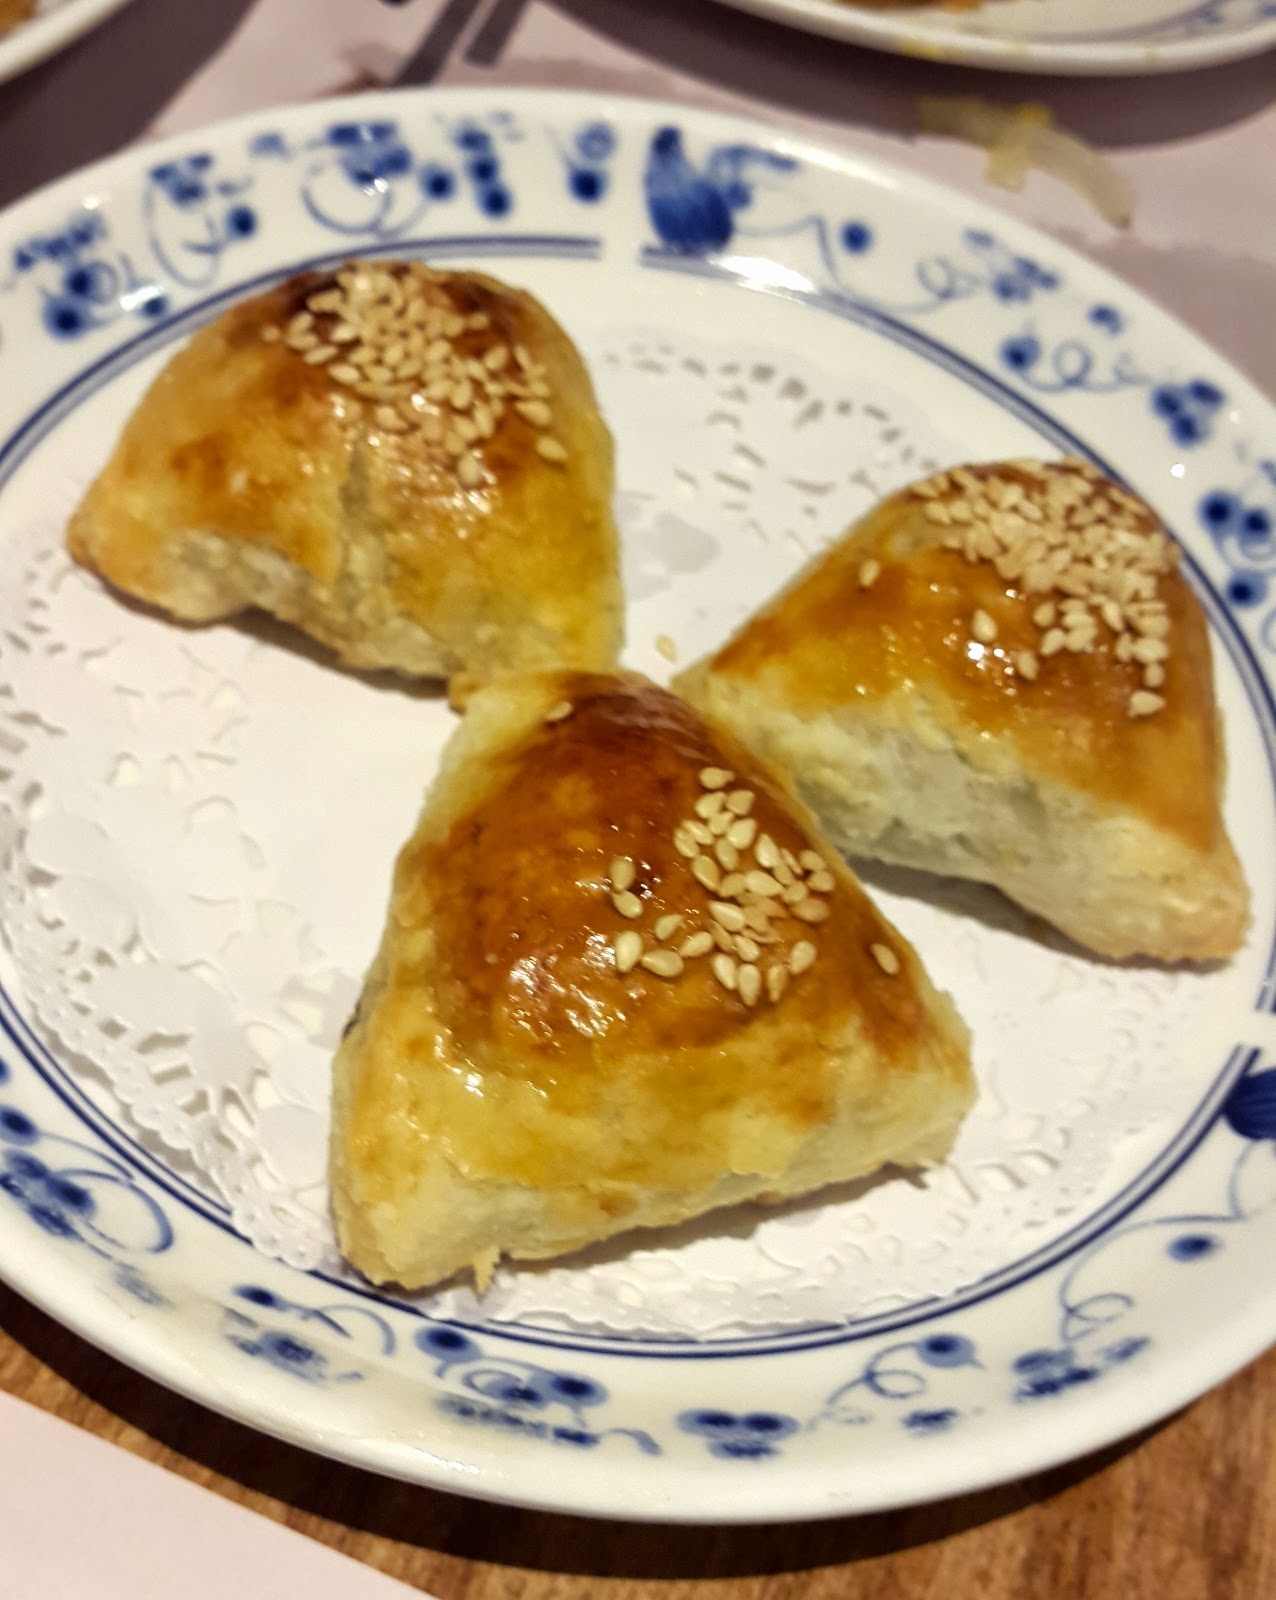 Canton Deli Baked Roasted Pork Pastries